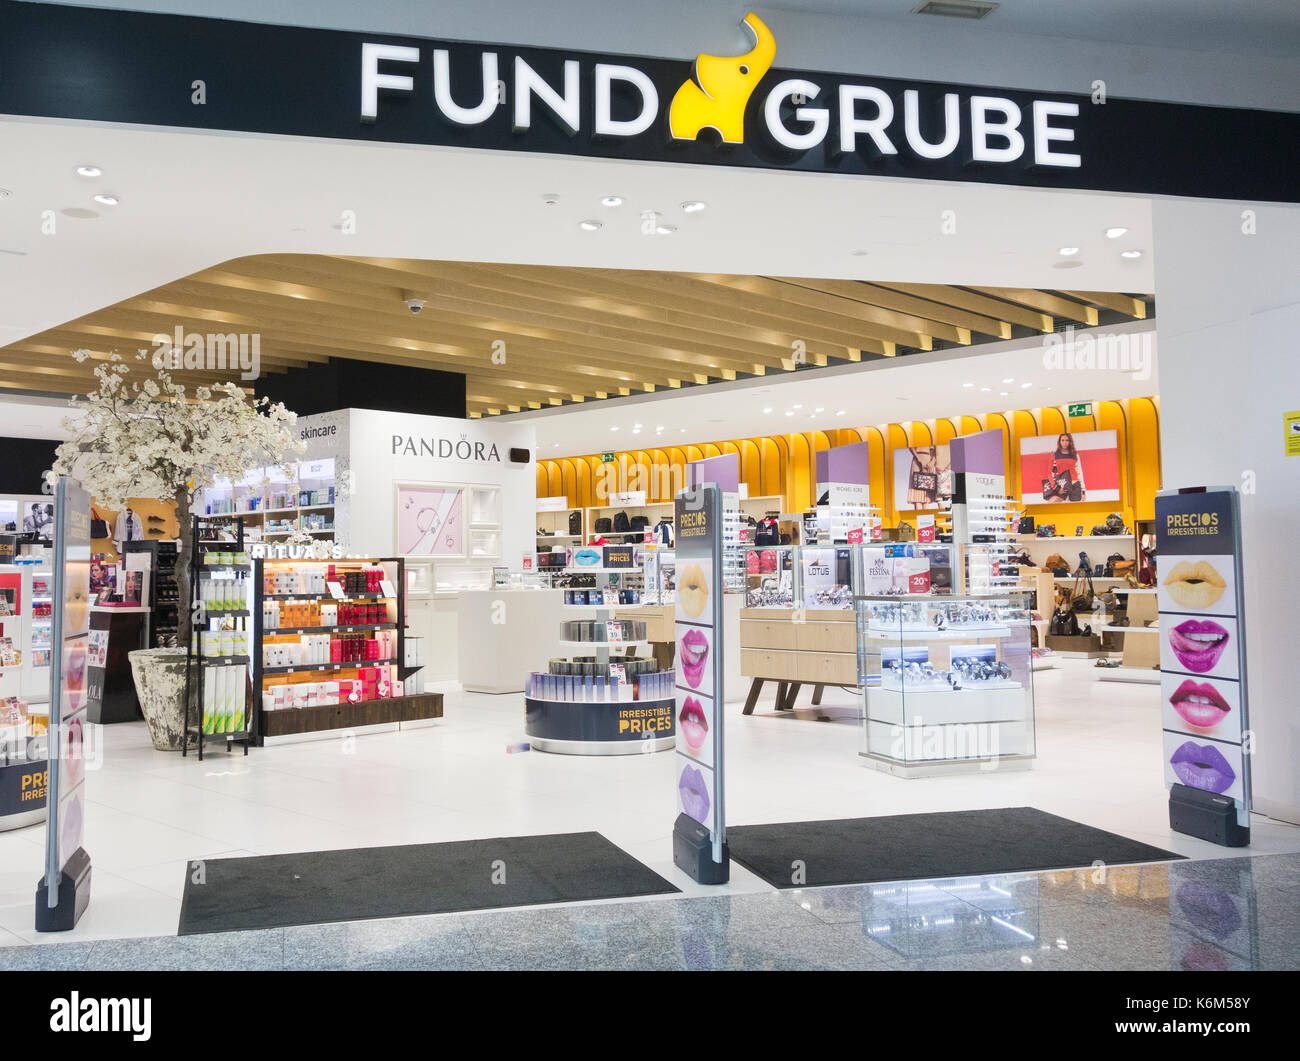 Funde Grube store in Spain - Stock Image